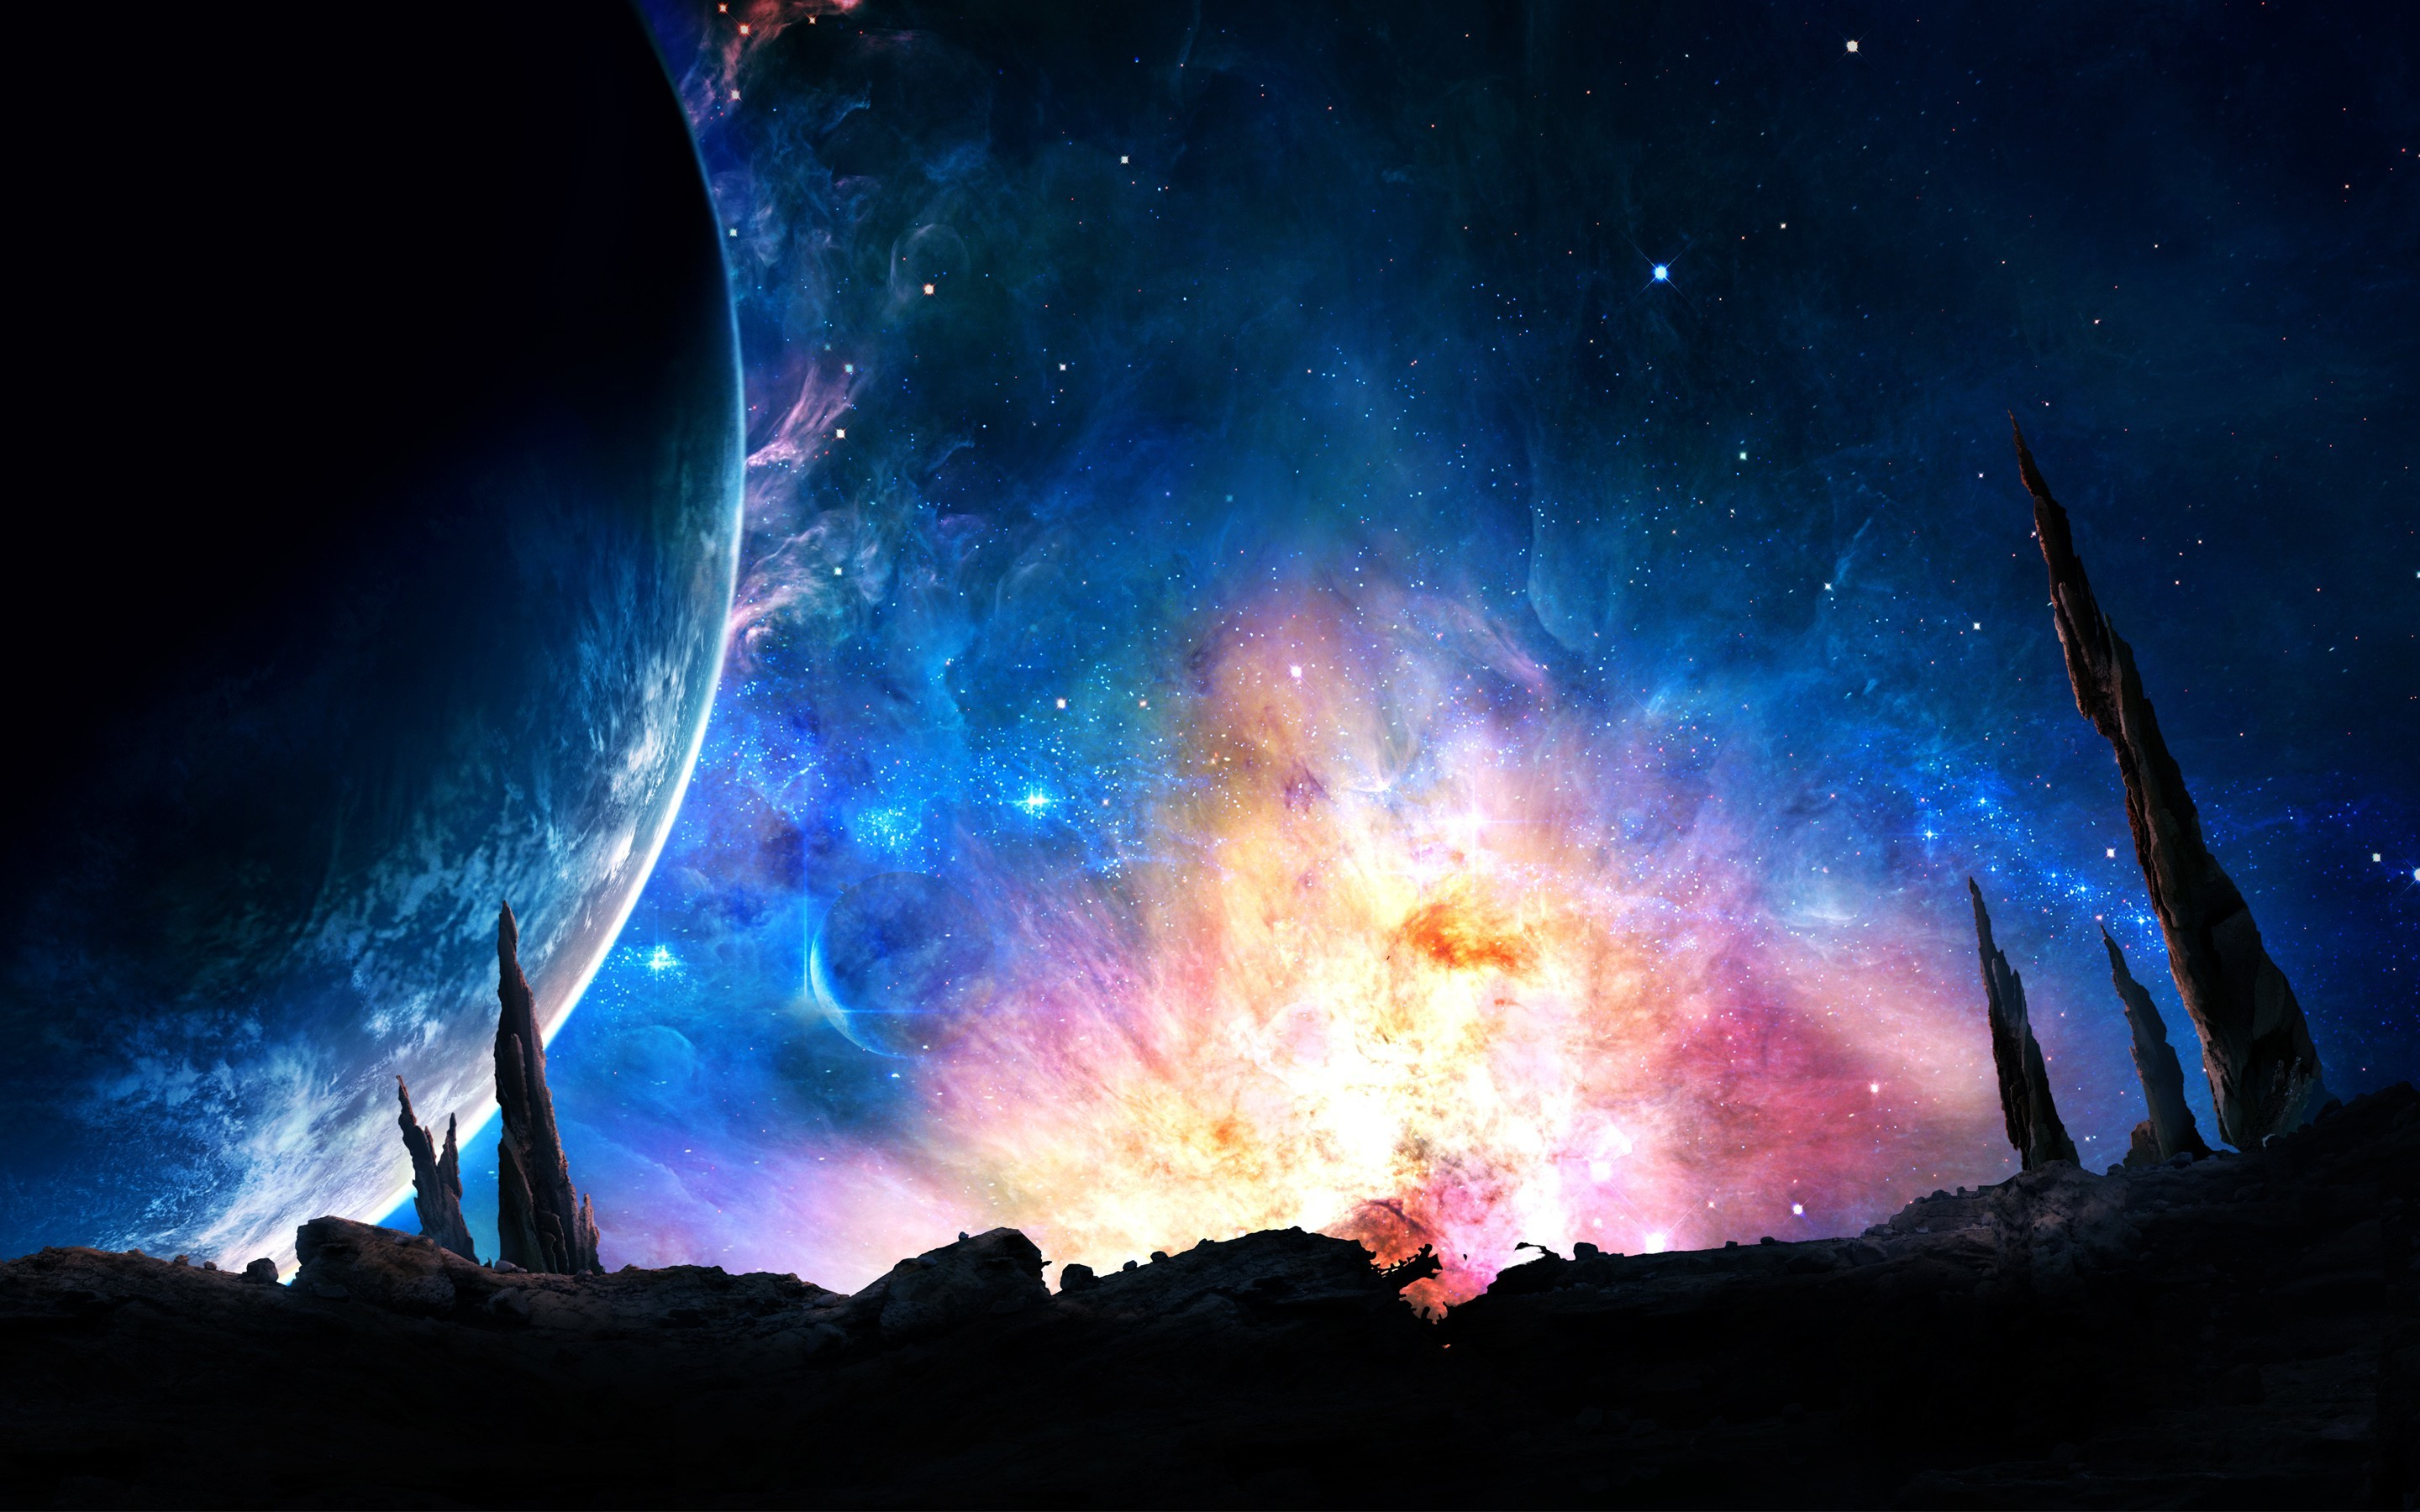 Universe Wallpaper 1080p Hd: 4K Galaxy Wallpaper (62+ Images